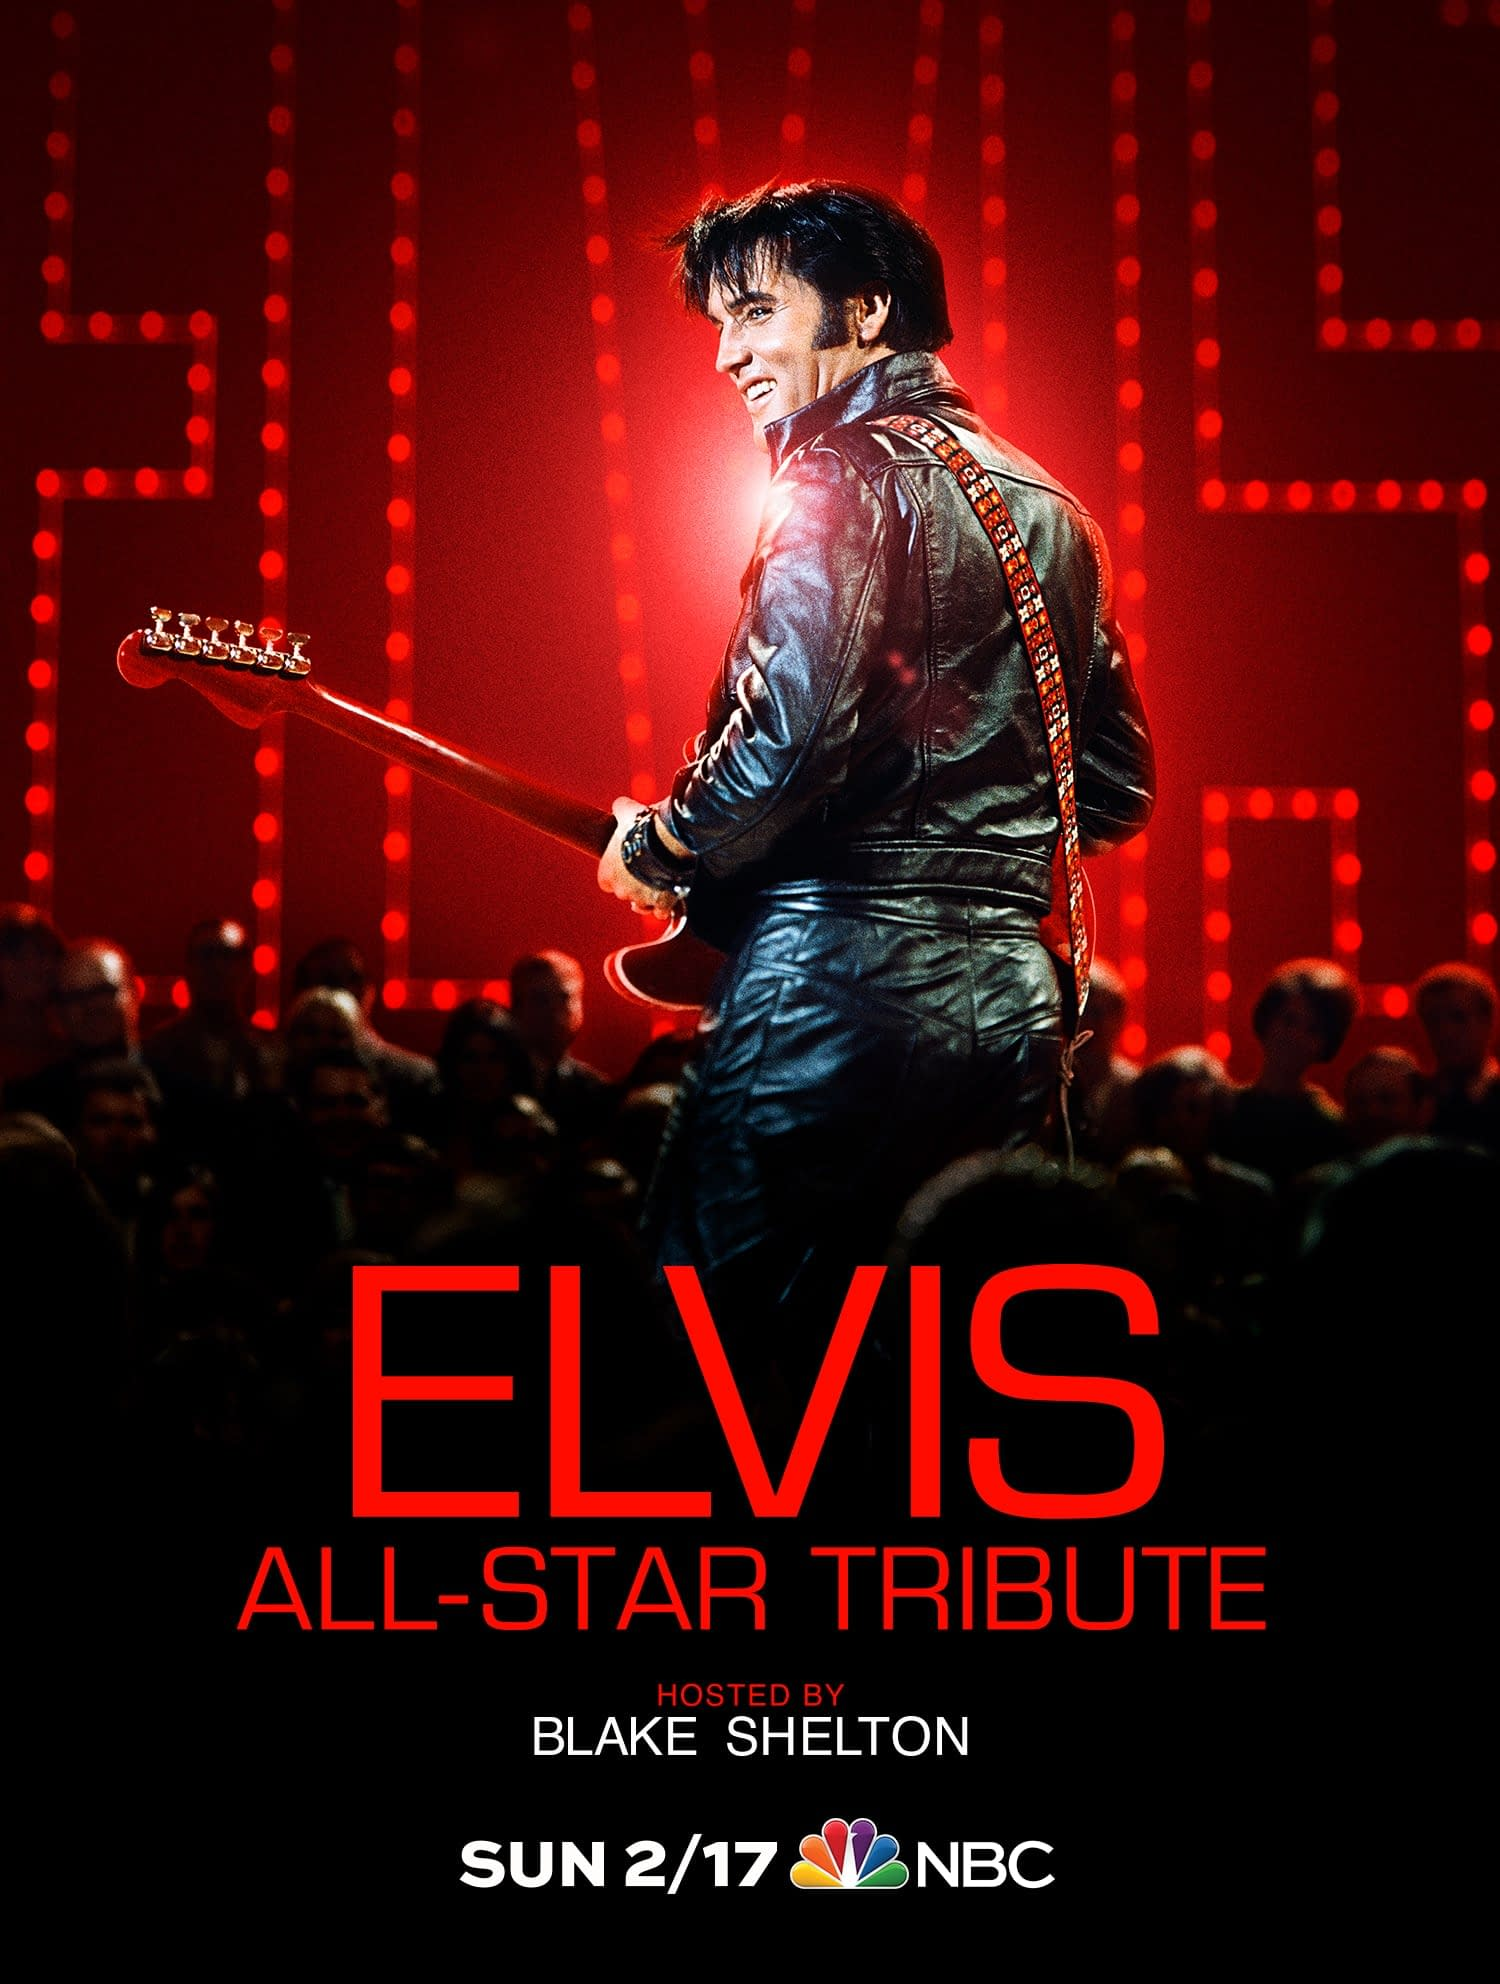 Elvis All-Star Tribute: Adam Lambert, John Legend, Jennifer Lopez and More Join NBC Special